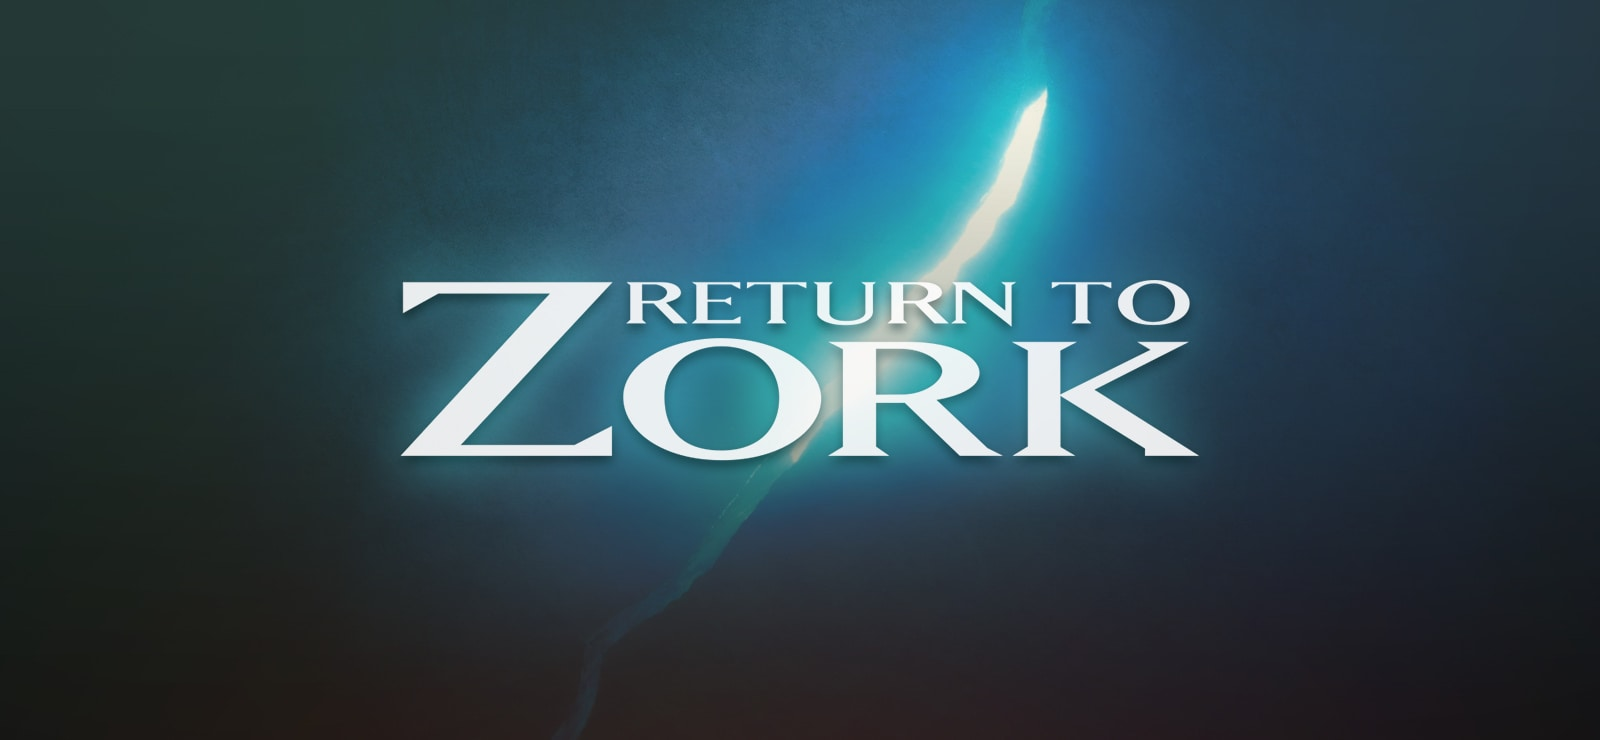 Return To Zork